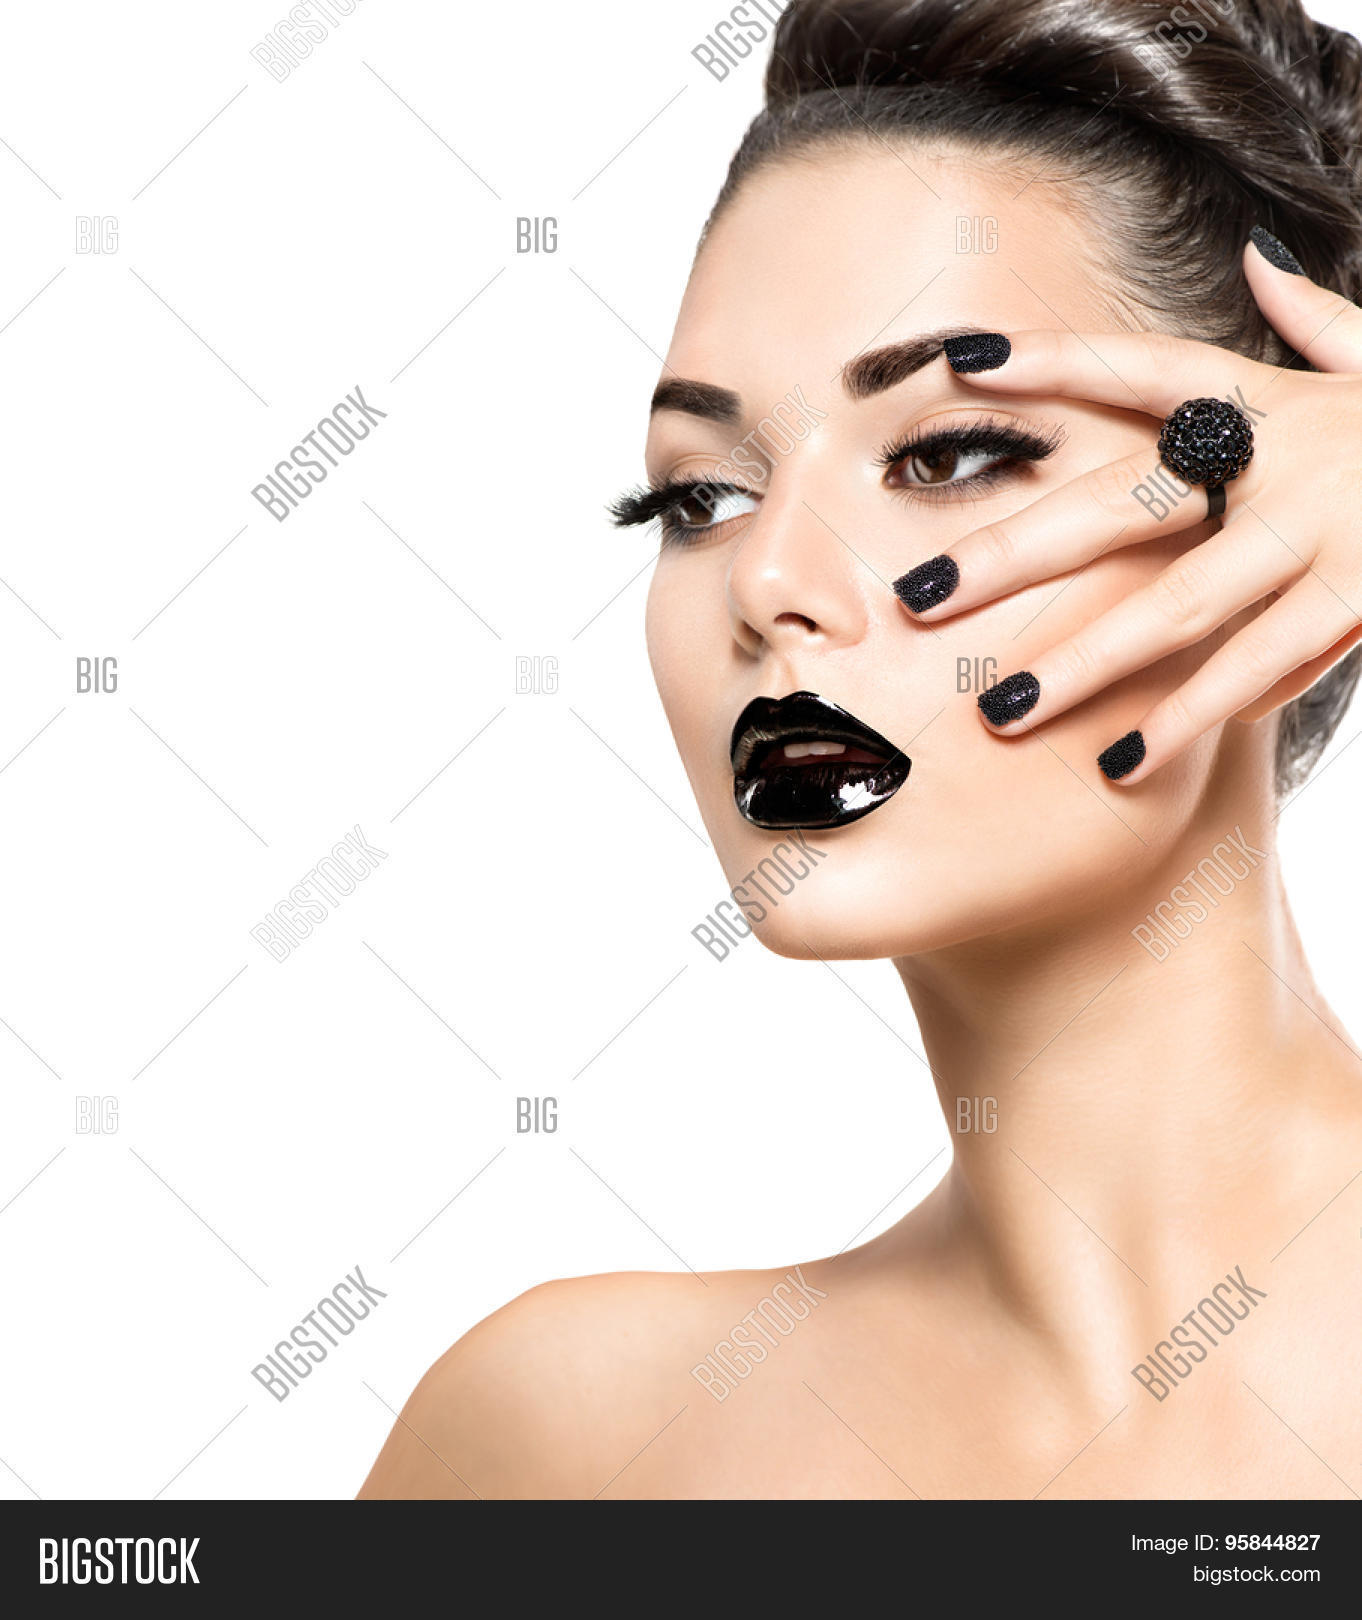 Beauty Fashion Model Image & Photo (Free Trial) | Bigstock